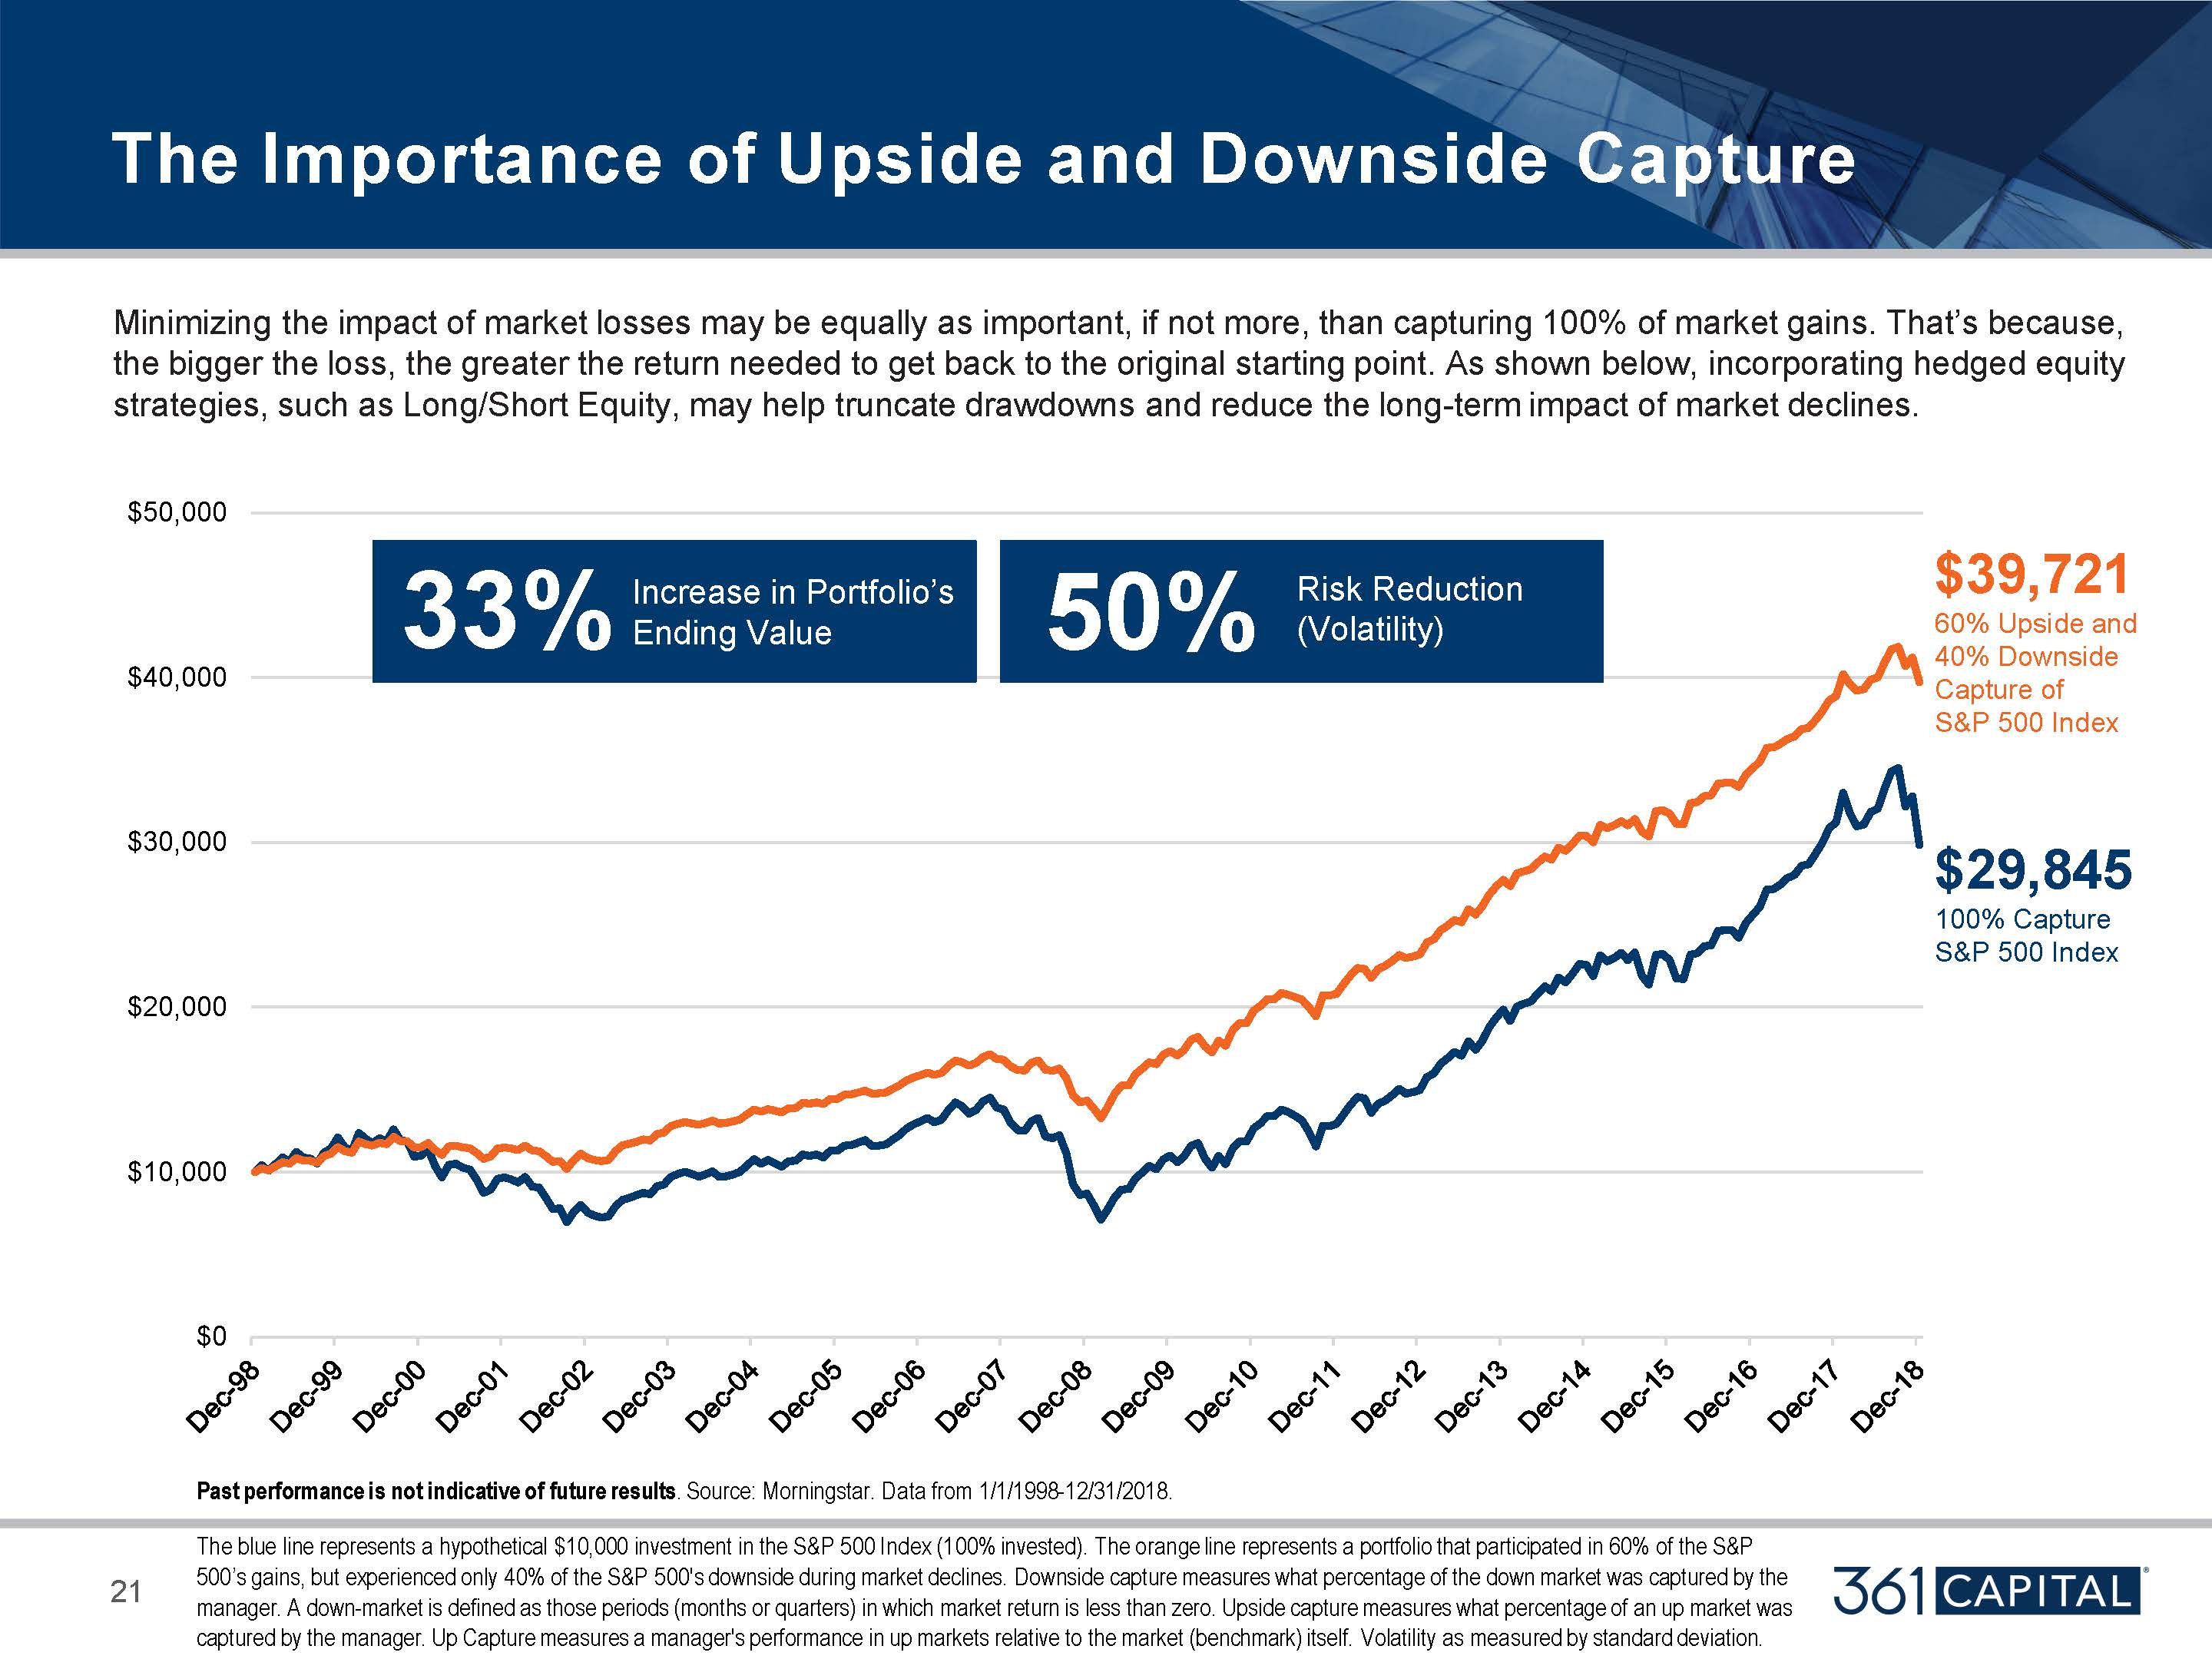 Minimizing the impact or market losses may be equally as important, if not more, than capturing 100% of market gains